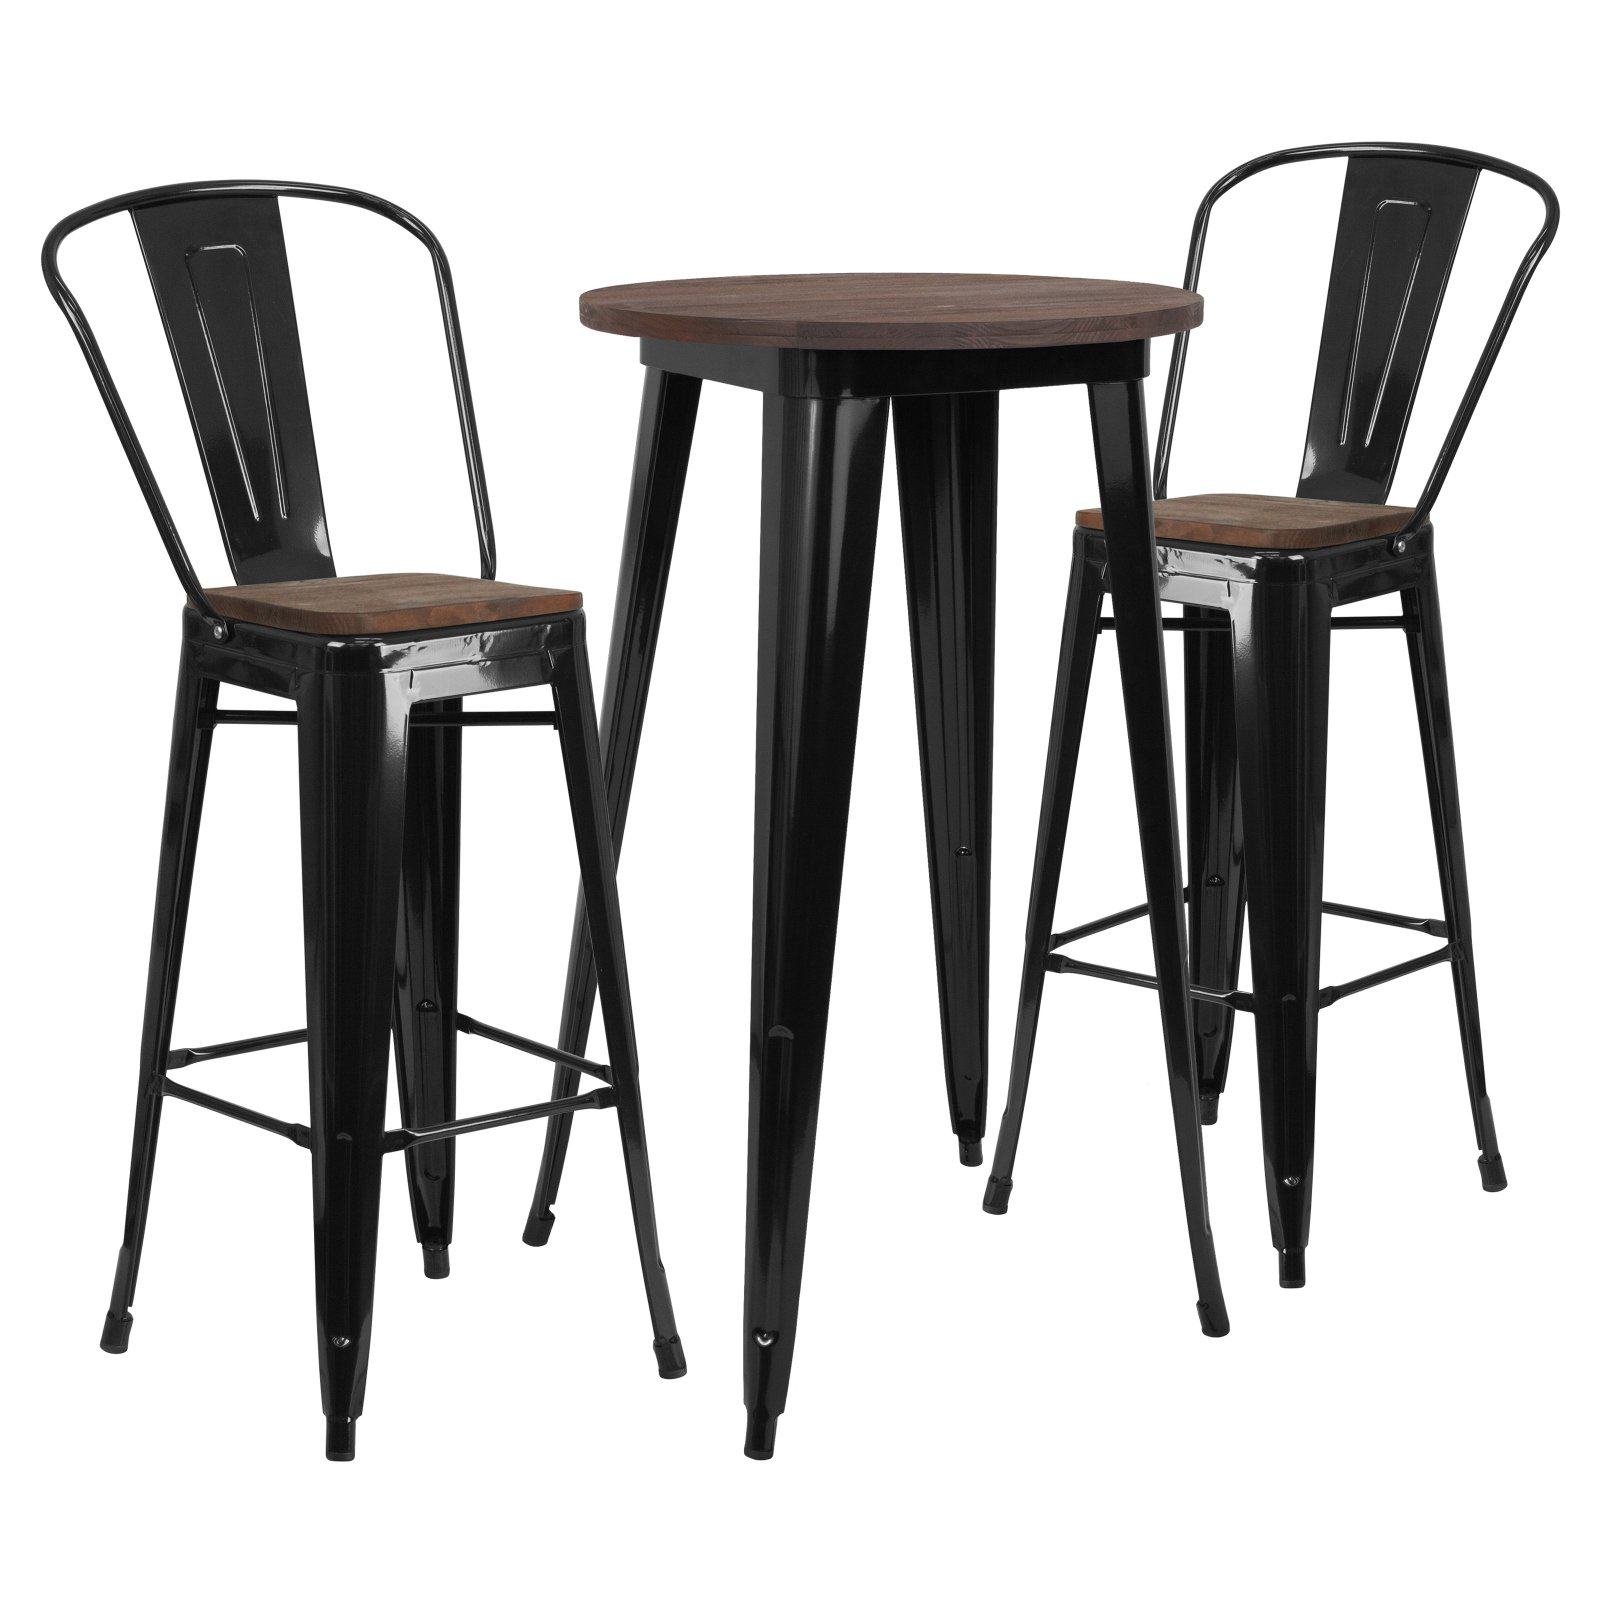 Wsb Winston Porter Miskell 3 Piece Dining Set | Morot 2 In 2019 | 3 With Most Recent Miskell 3 Piece Dining Sets (Image 20 of 20)